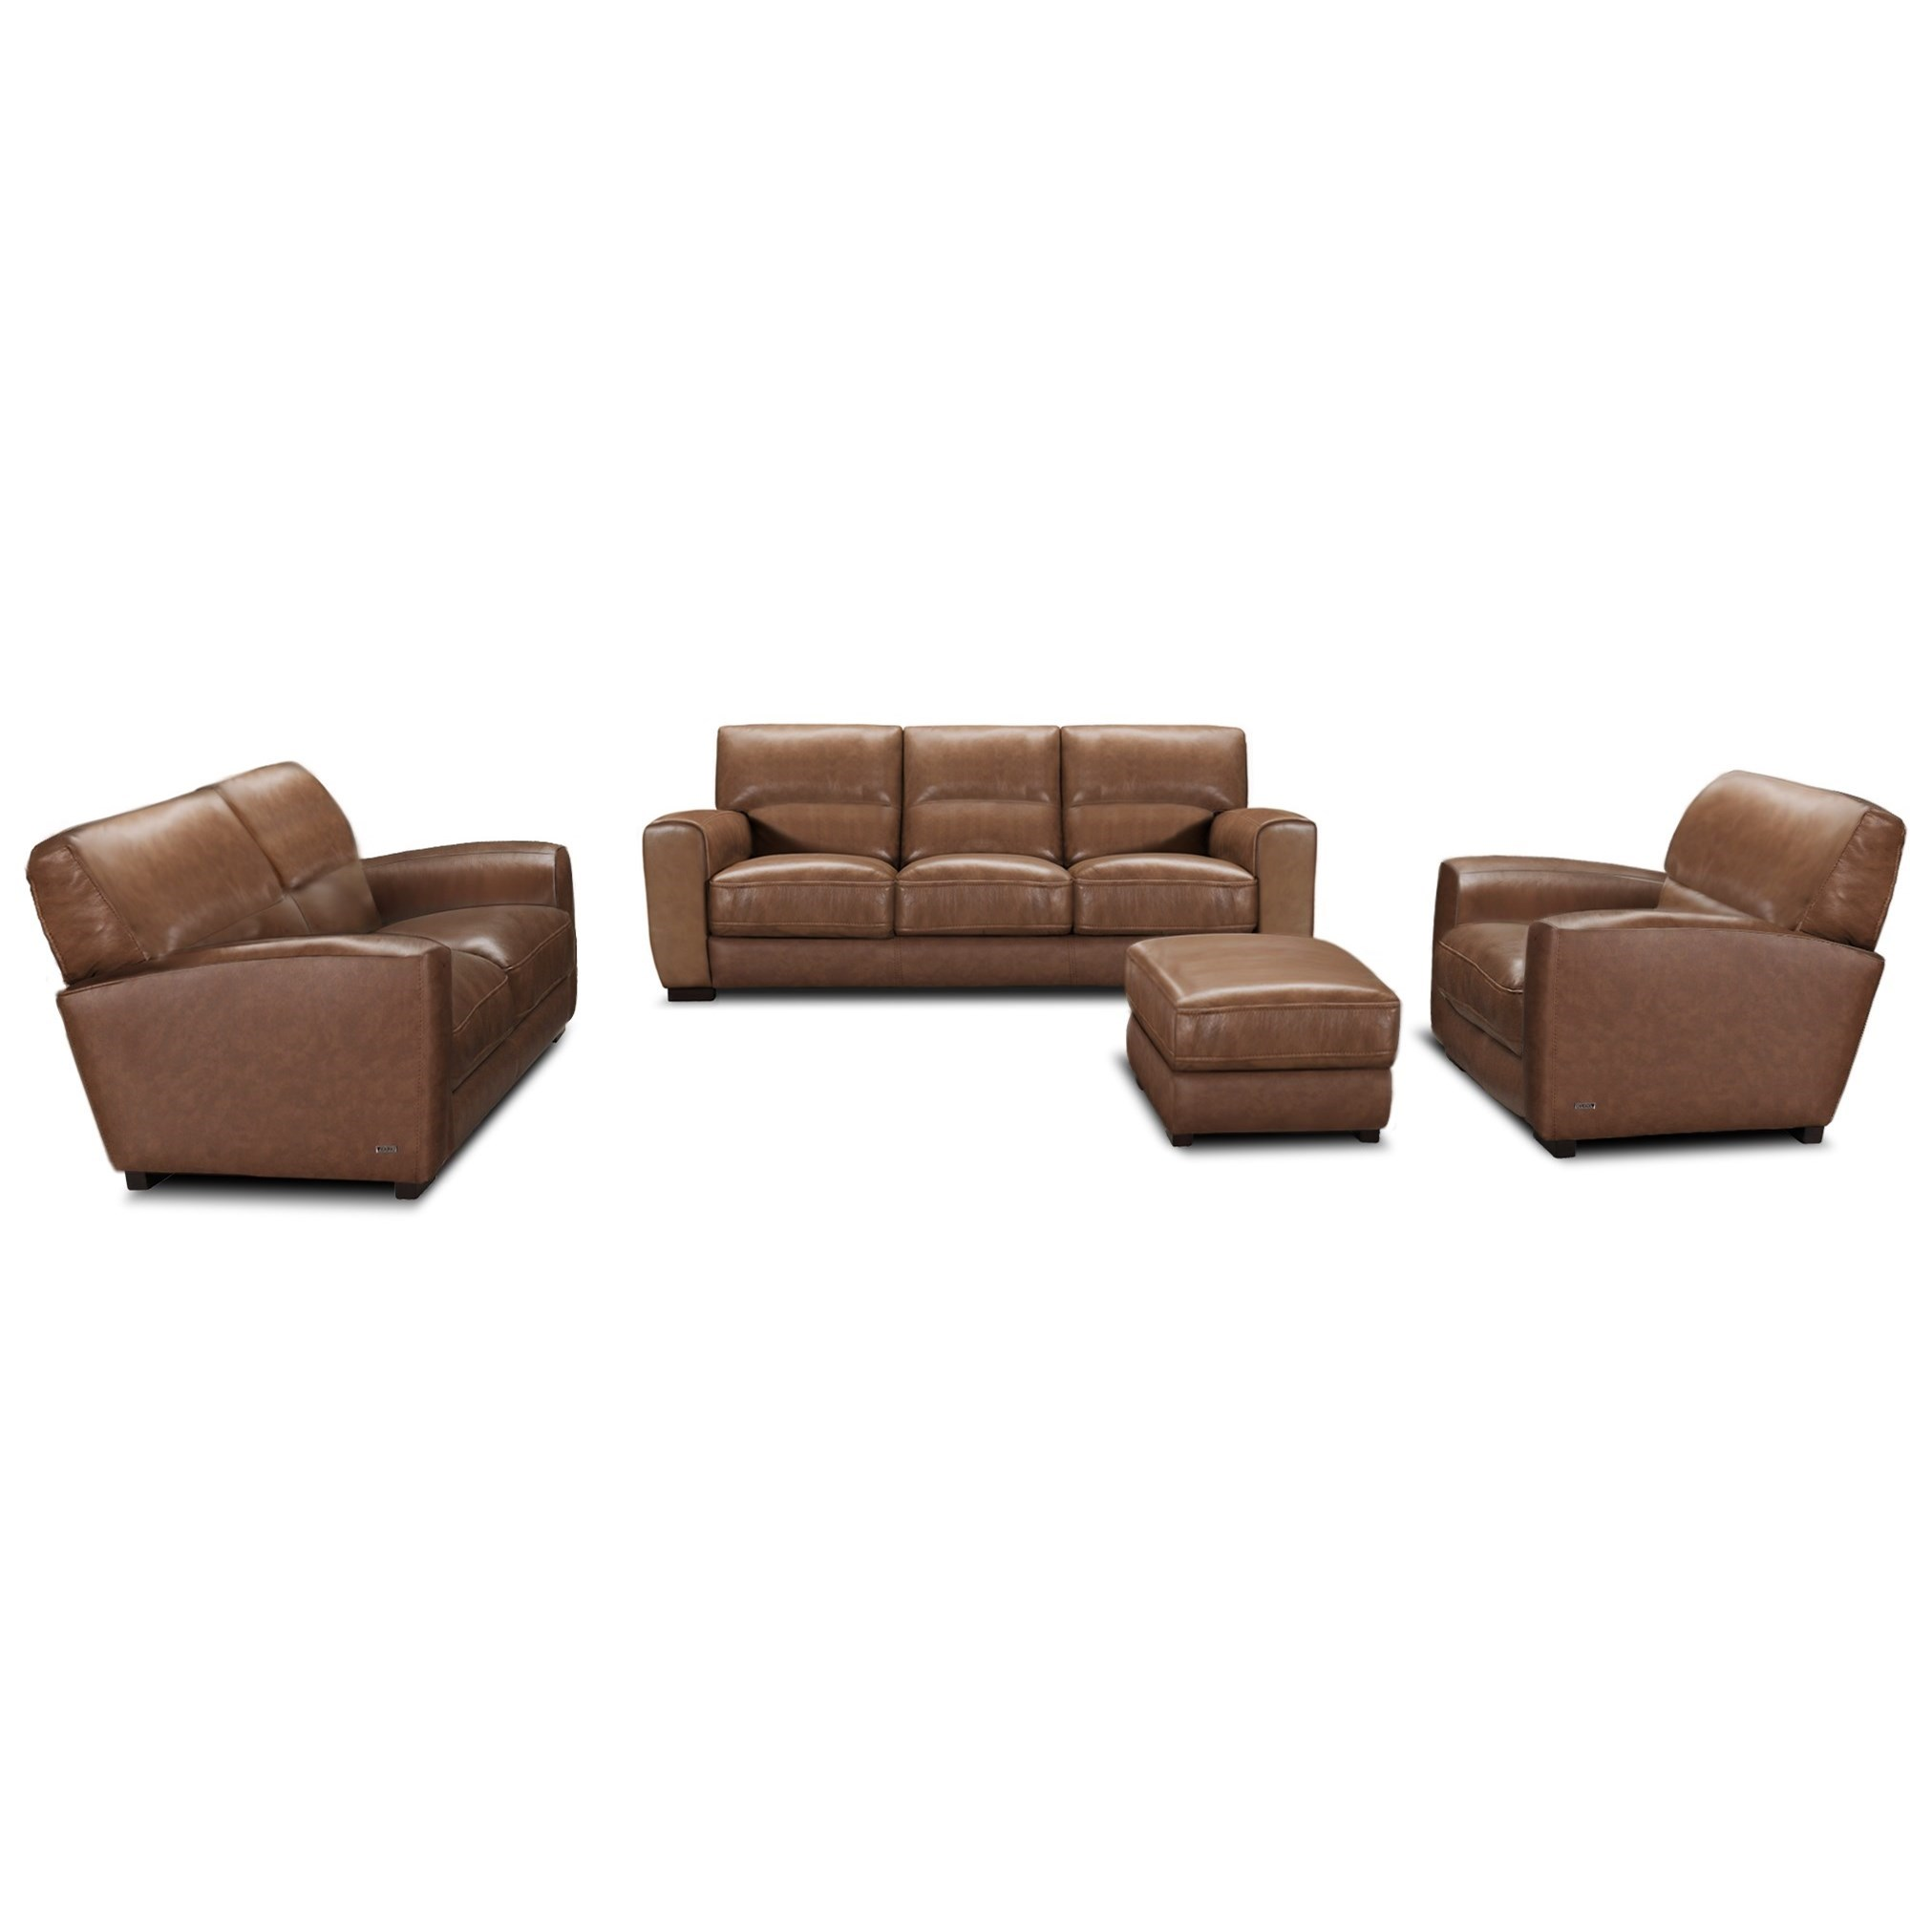 31366 Stationary Living Room Group by Violino at Furniture Superstore - Rochester, MN